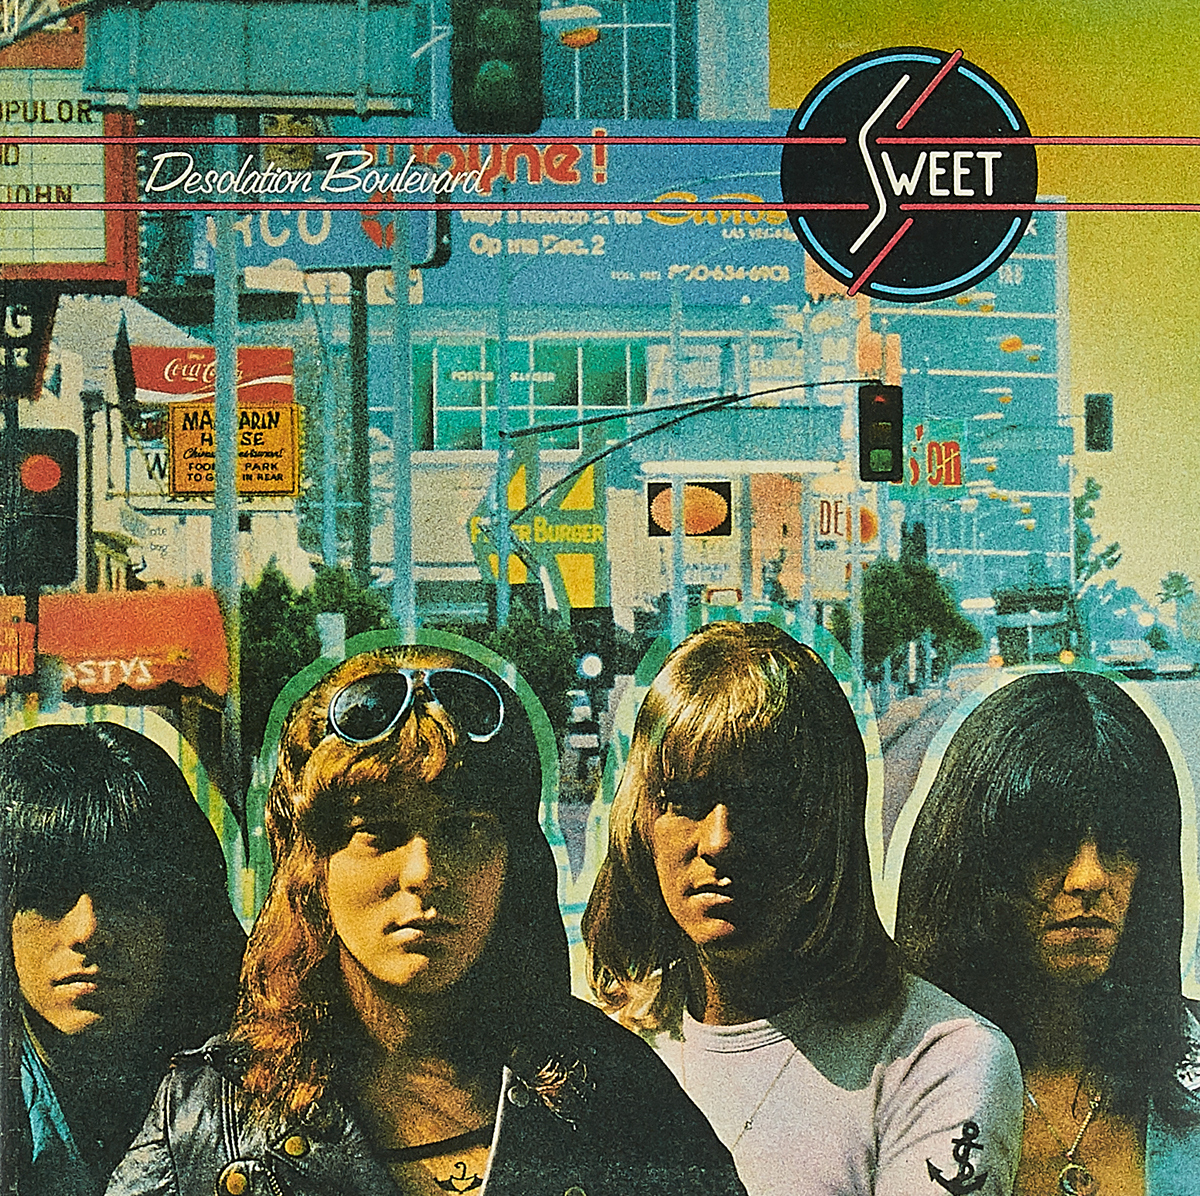 Sweet Sweet. Desolation Boulevard (New Vinyl Edition) (LP) sweet sweet give us a wink new vinyl edition lp